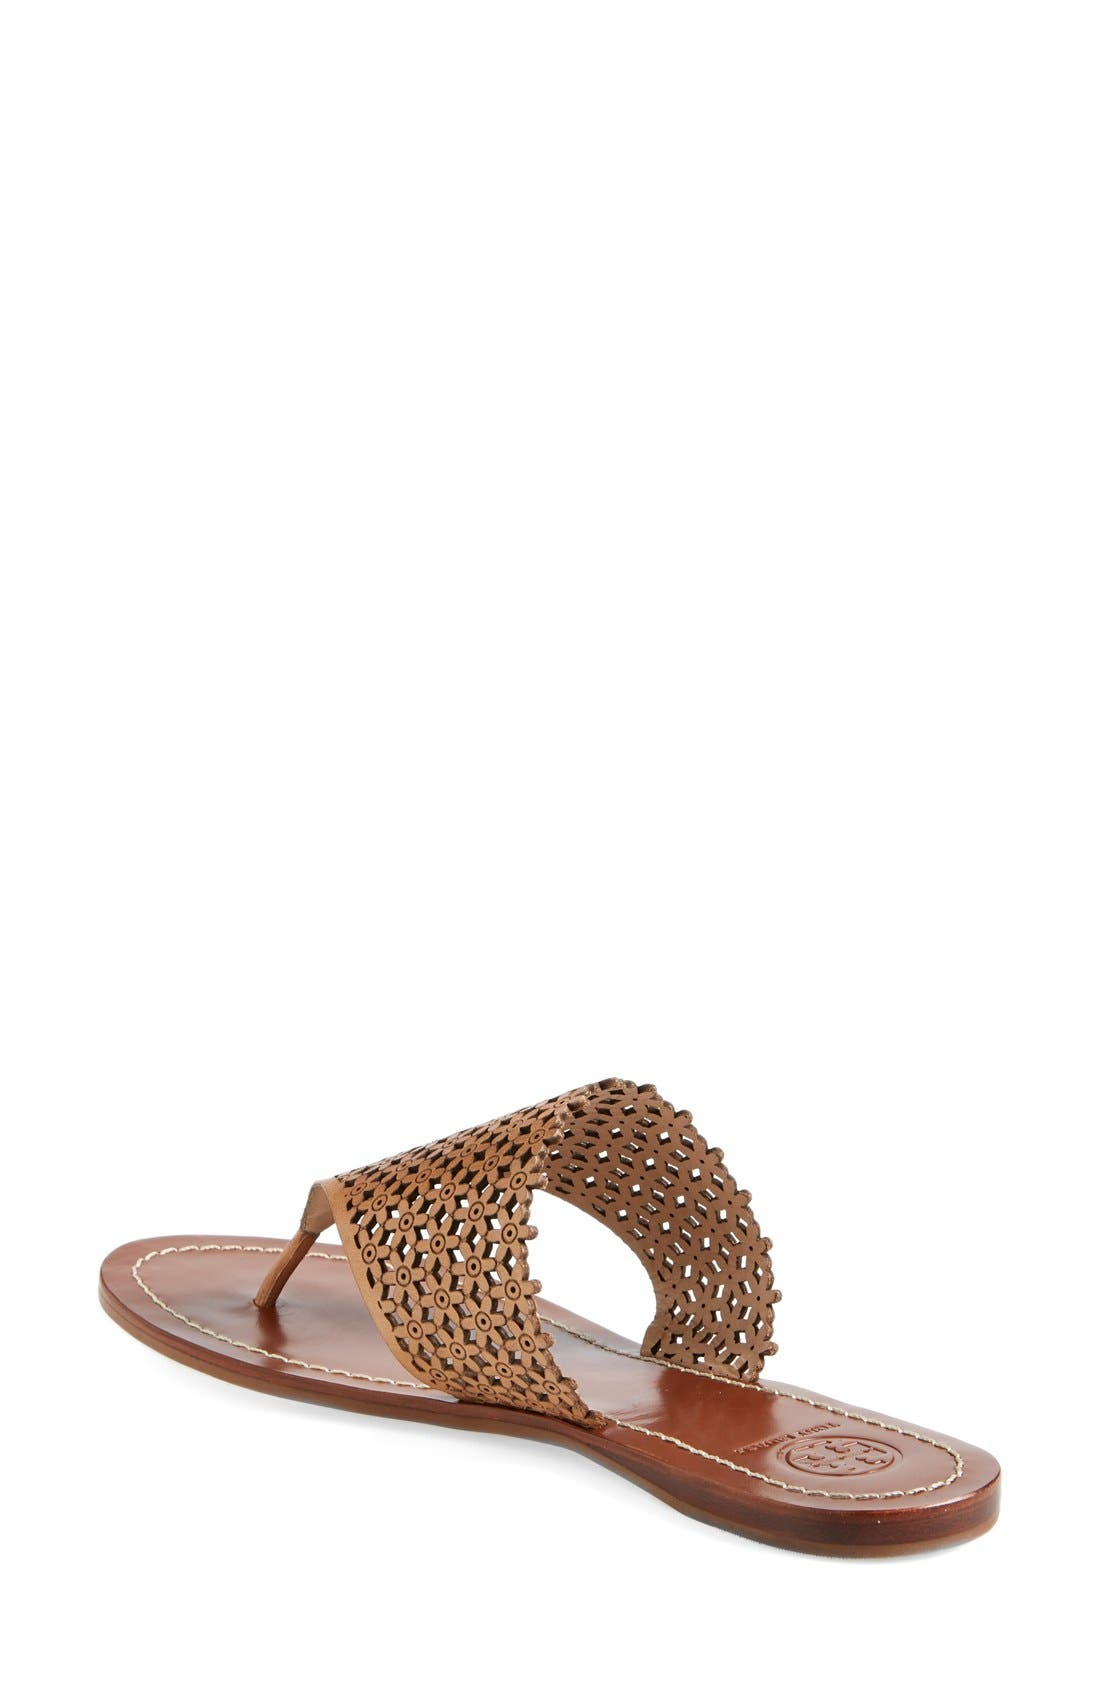 TORY BURCH,                             'Daisy' Perforated Sandal,                             Alternate thumbnail 4, color,                             671